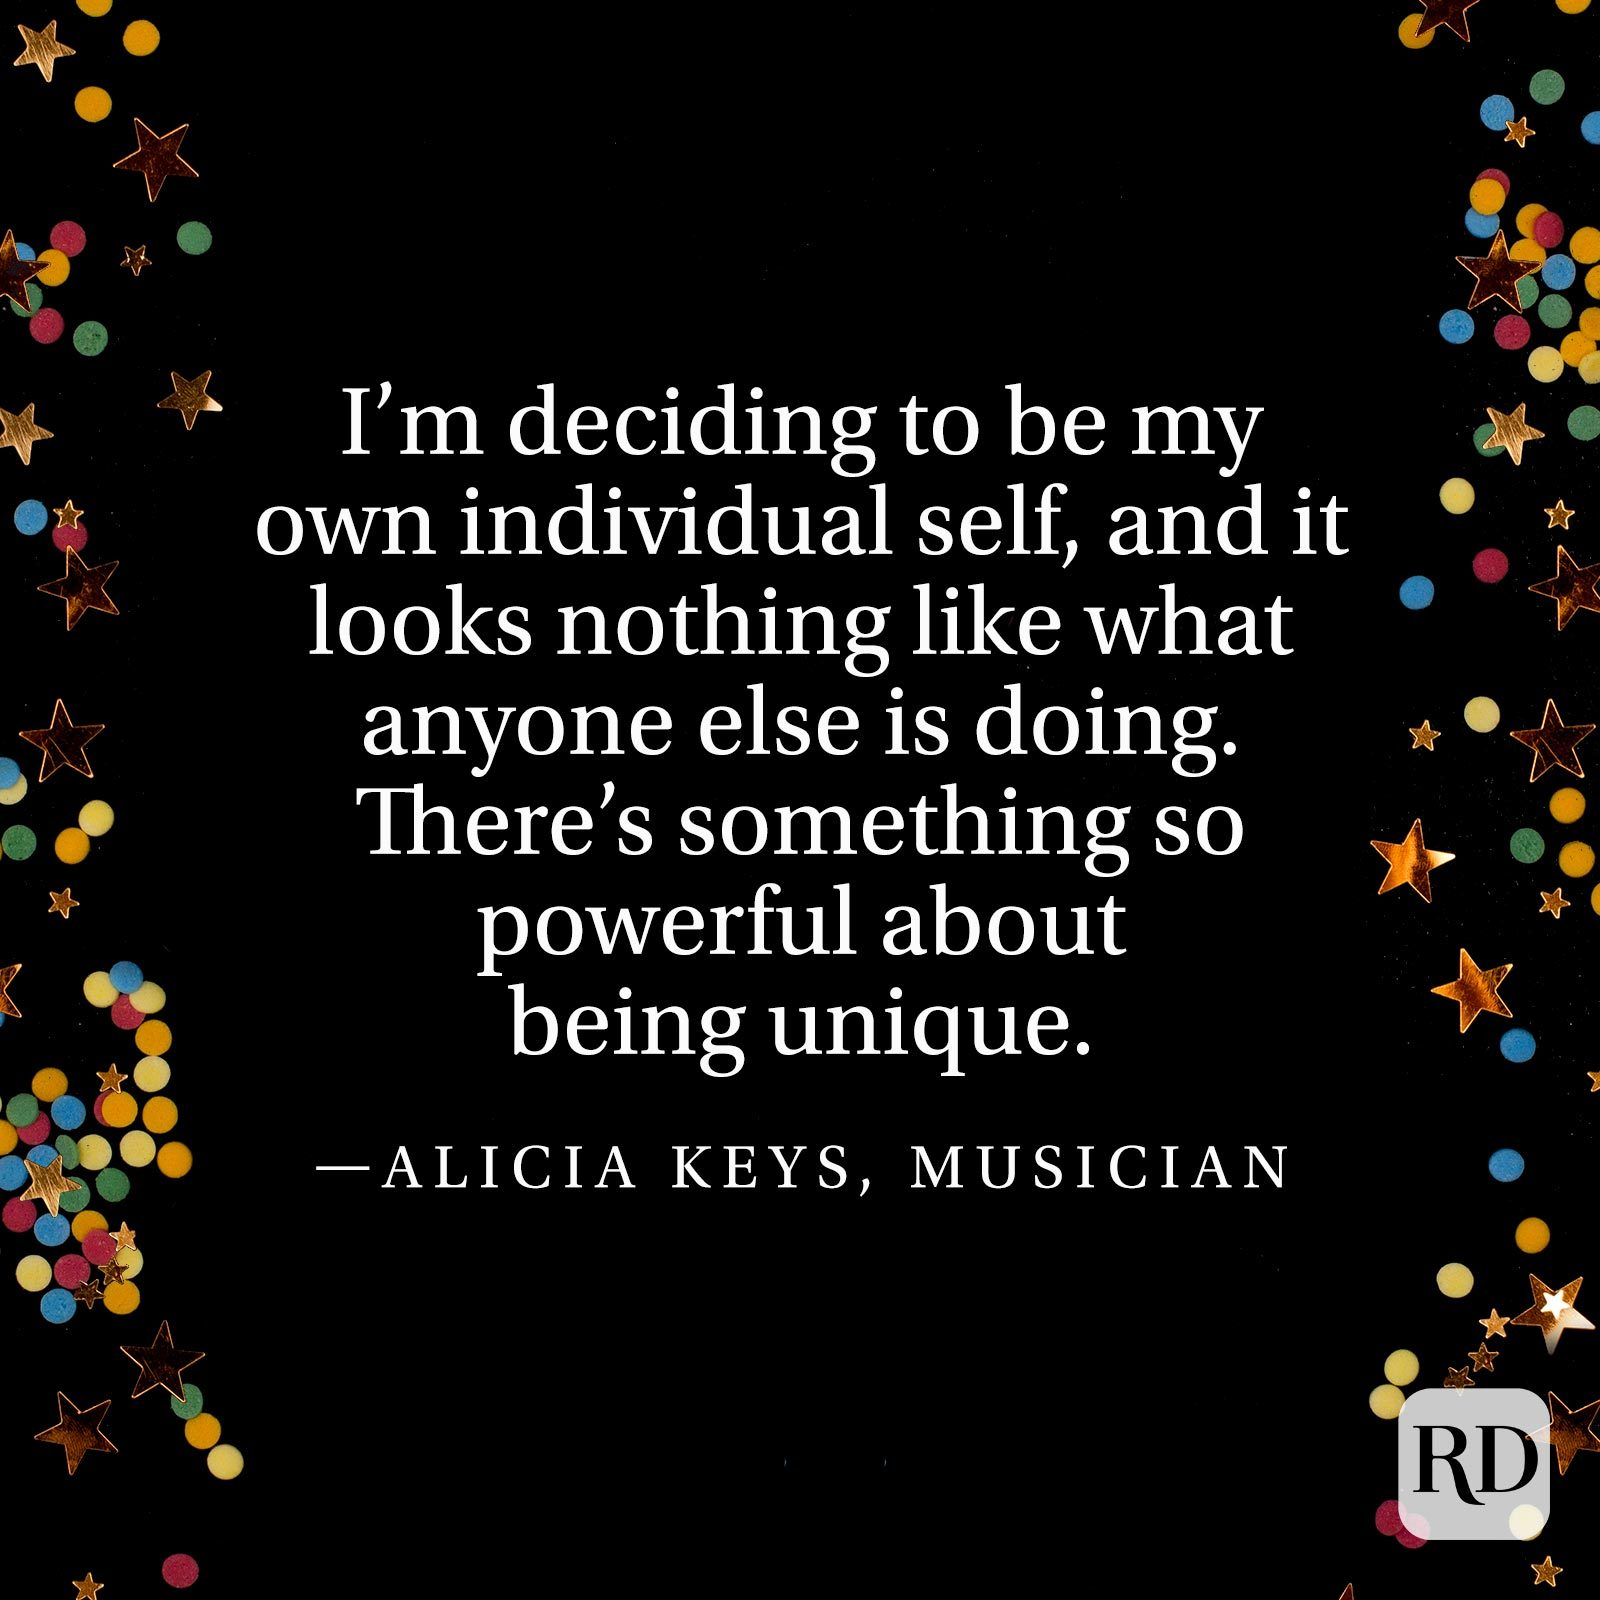 """I'm deciding to be my own individual self, and it looks nothing like what anyone else is doing. There's something so powerful about being unique."" —Alicia Keys, musician"